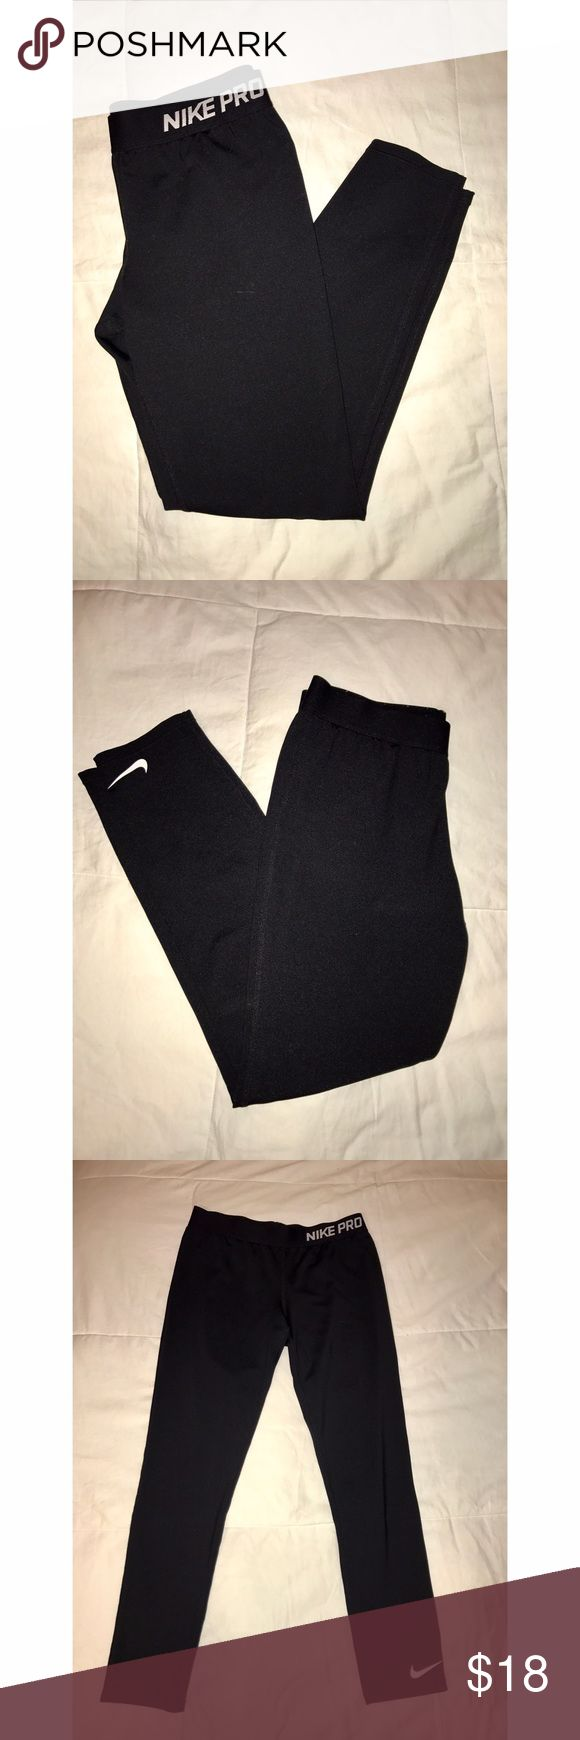 Nike Pro Black Leggings these are KIDS XL • worn twice • I am usually a ladies 00 or XS & these are big on me • open to offers Nike Pants Leggings